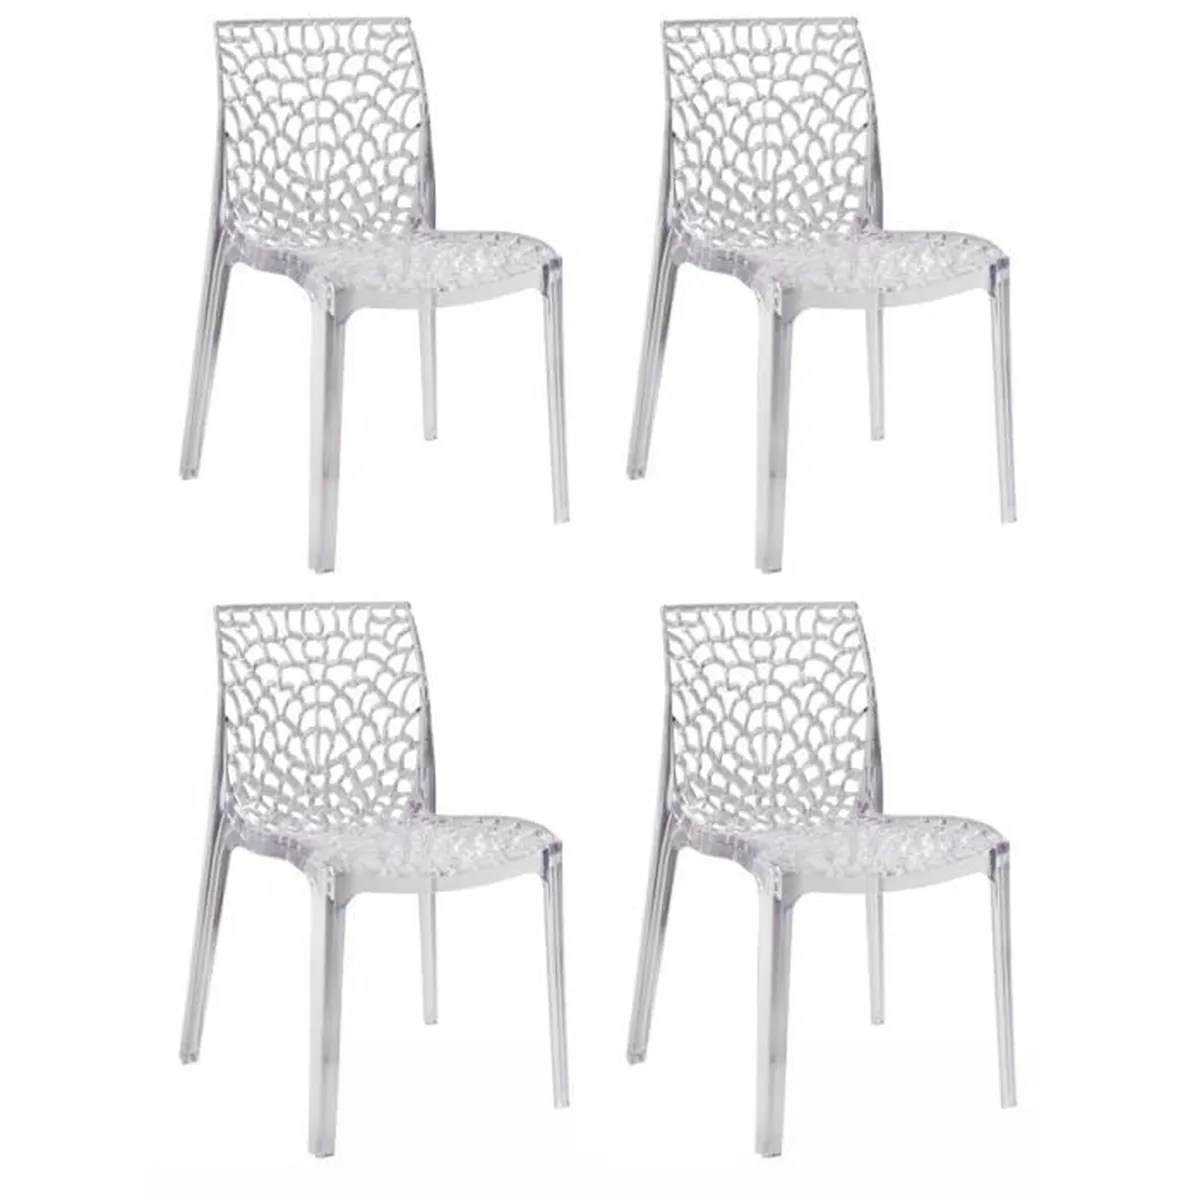 Lot 4 Chaises Transparentes Lot De 4 Chaises Design Transparentes Collection Gruyer Achat